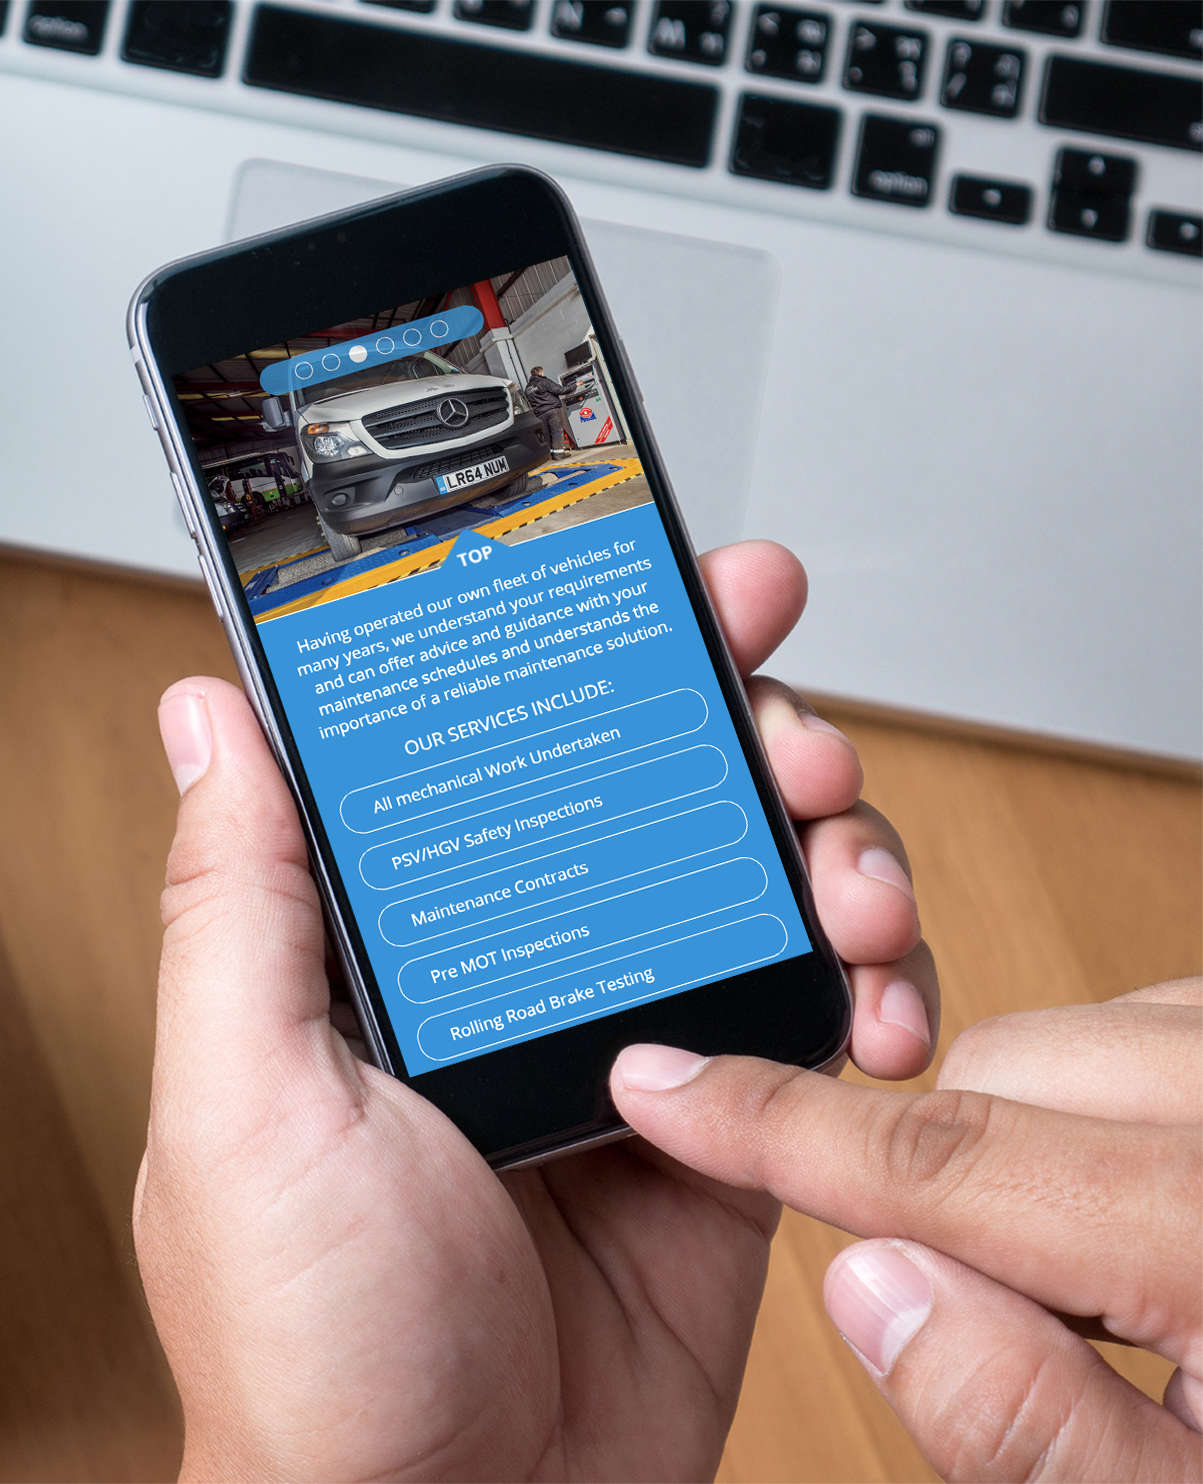 Bluefox responsive website displaying on mobile